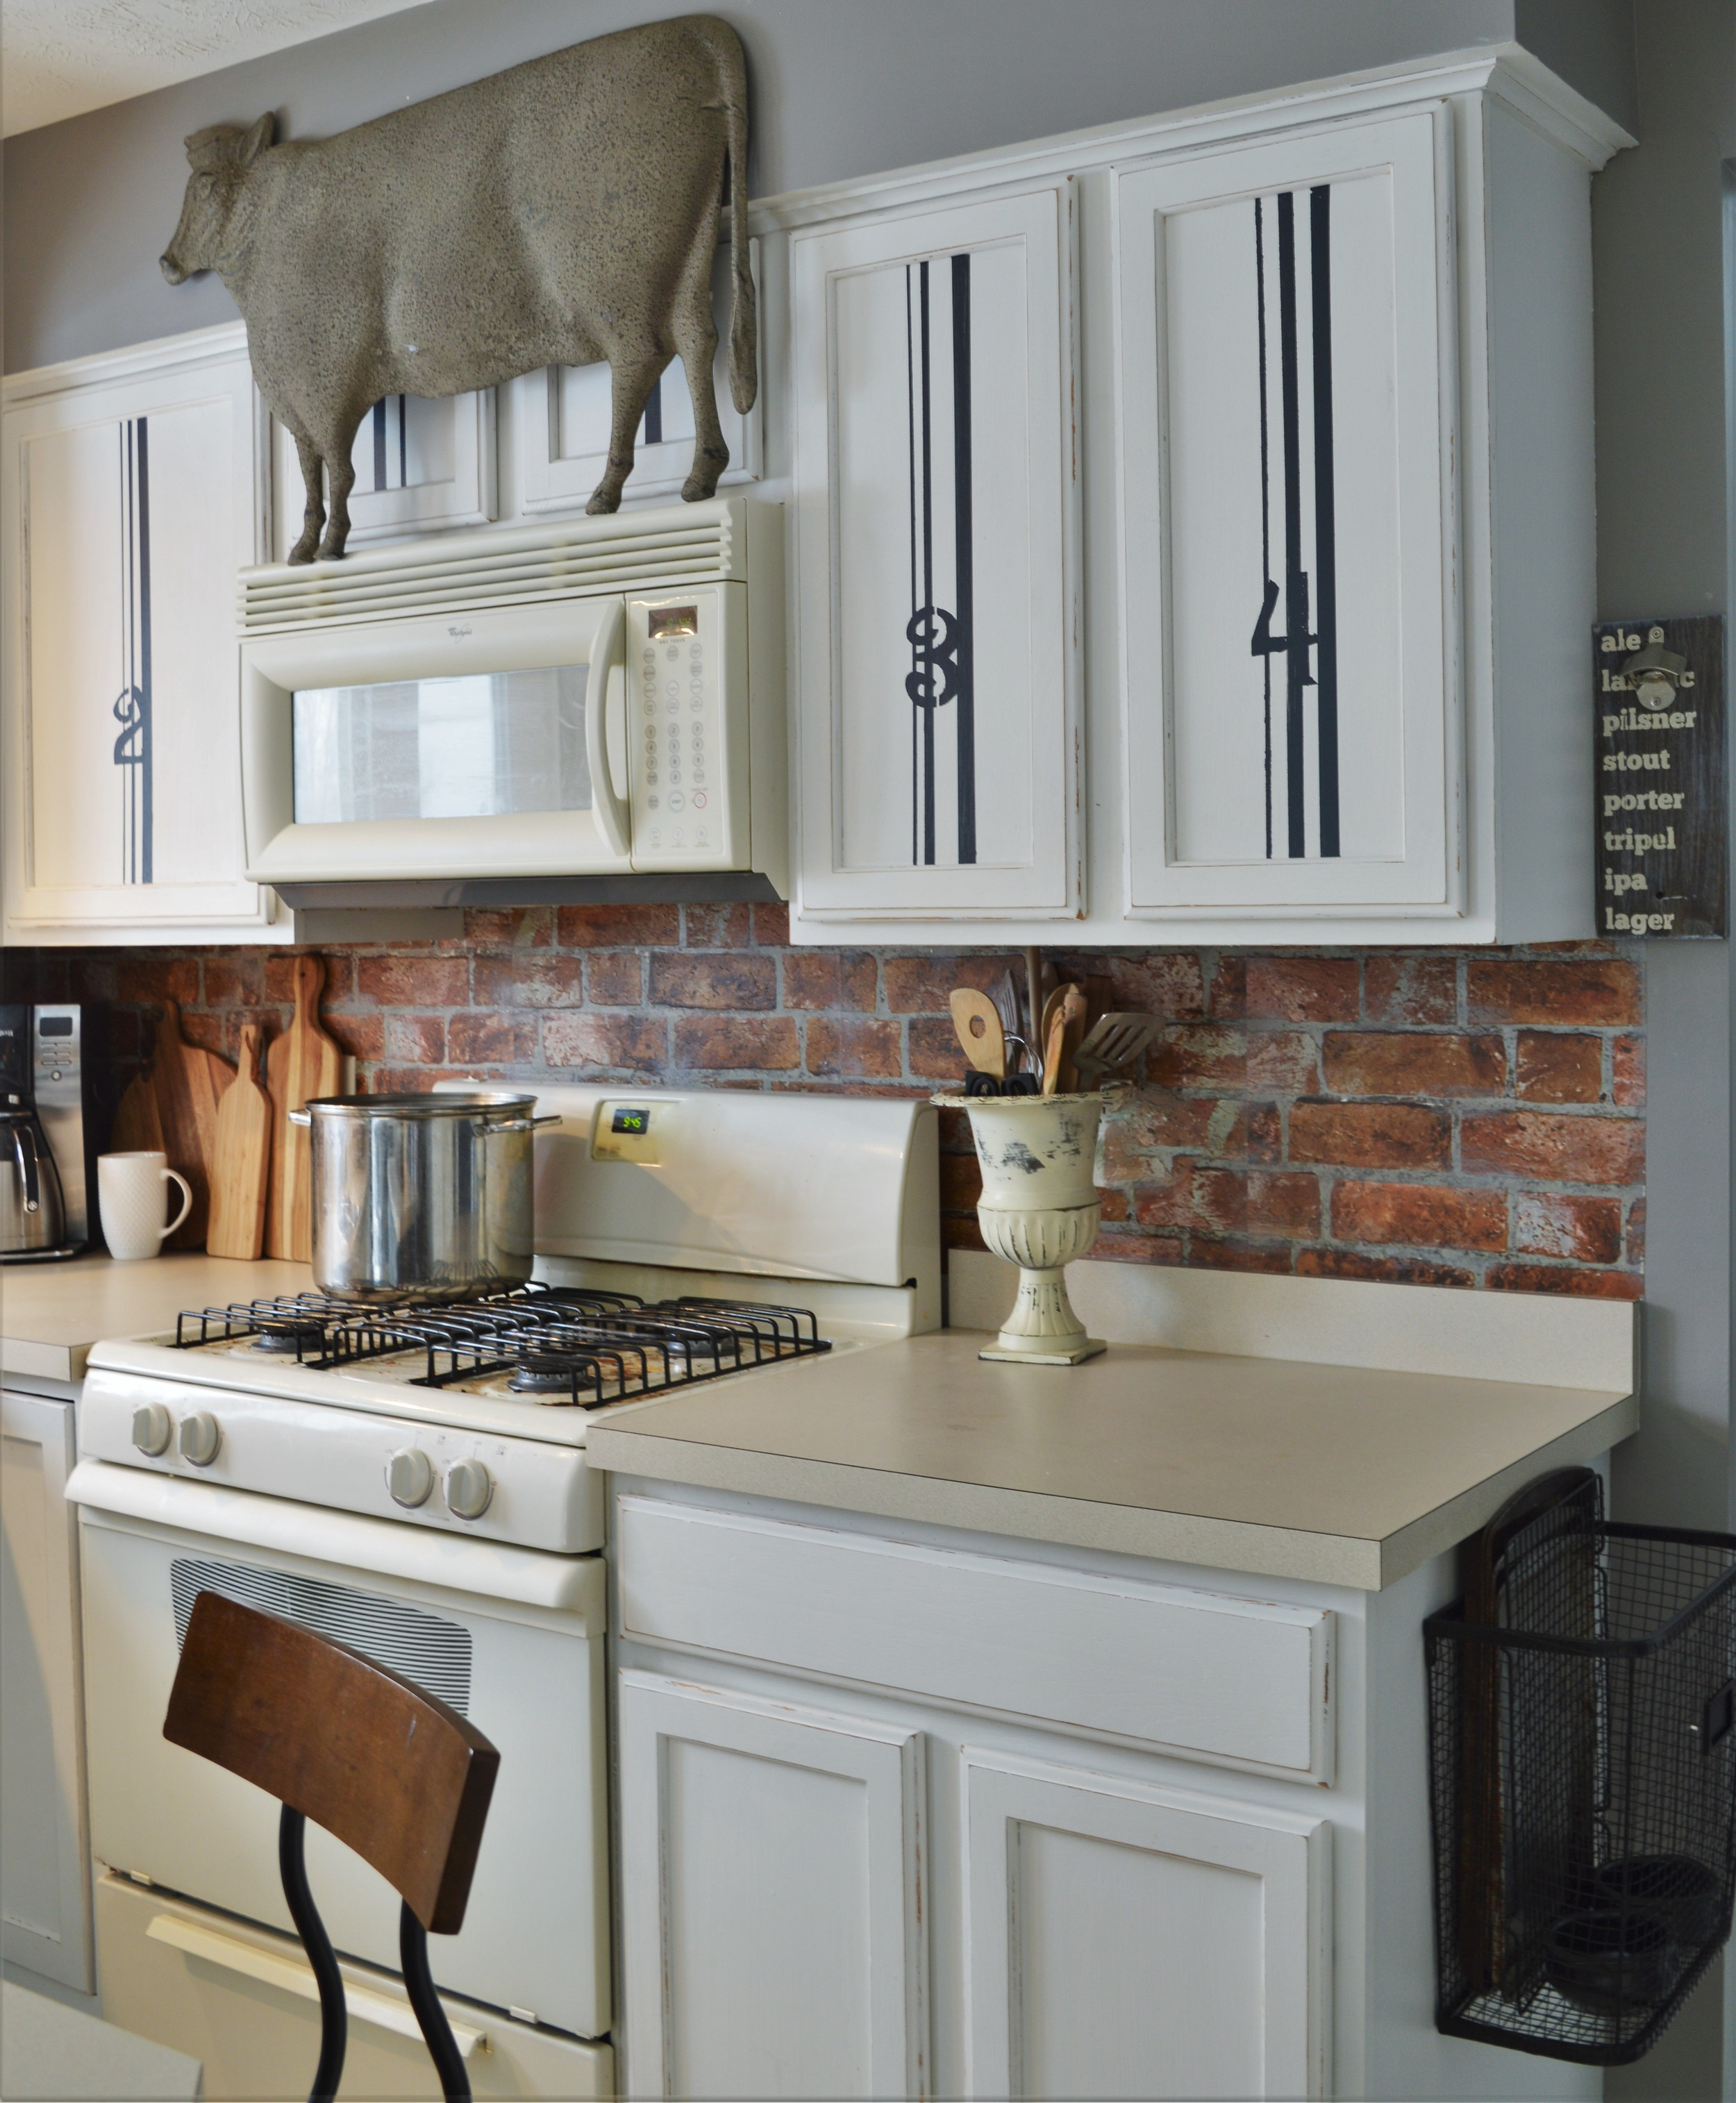 farmhouse kitchen cabinets. Painted Kitchen Cabinets  Adding Farmhouse Character The Other Side of Neutral